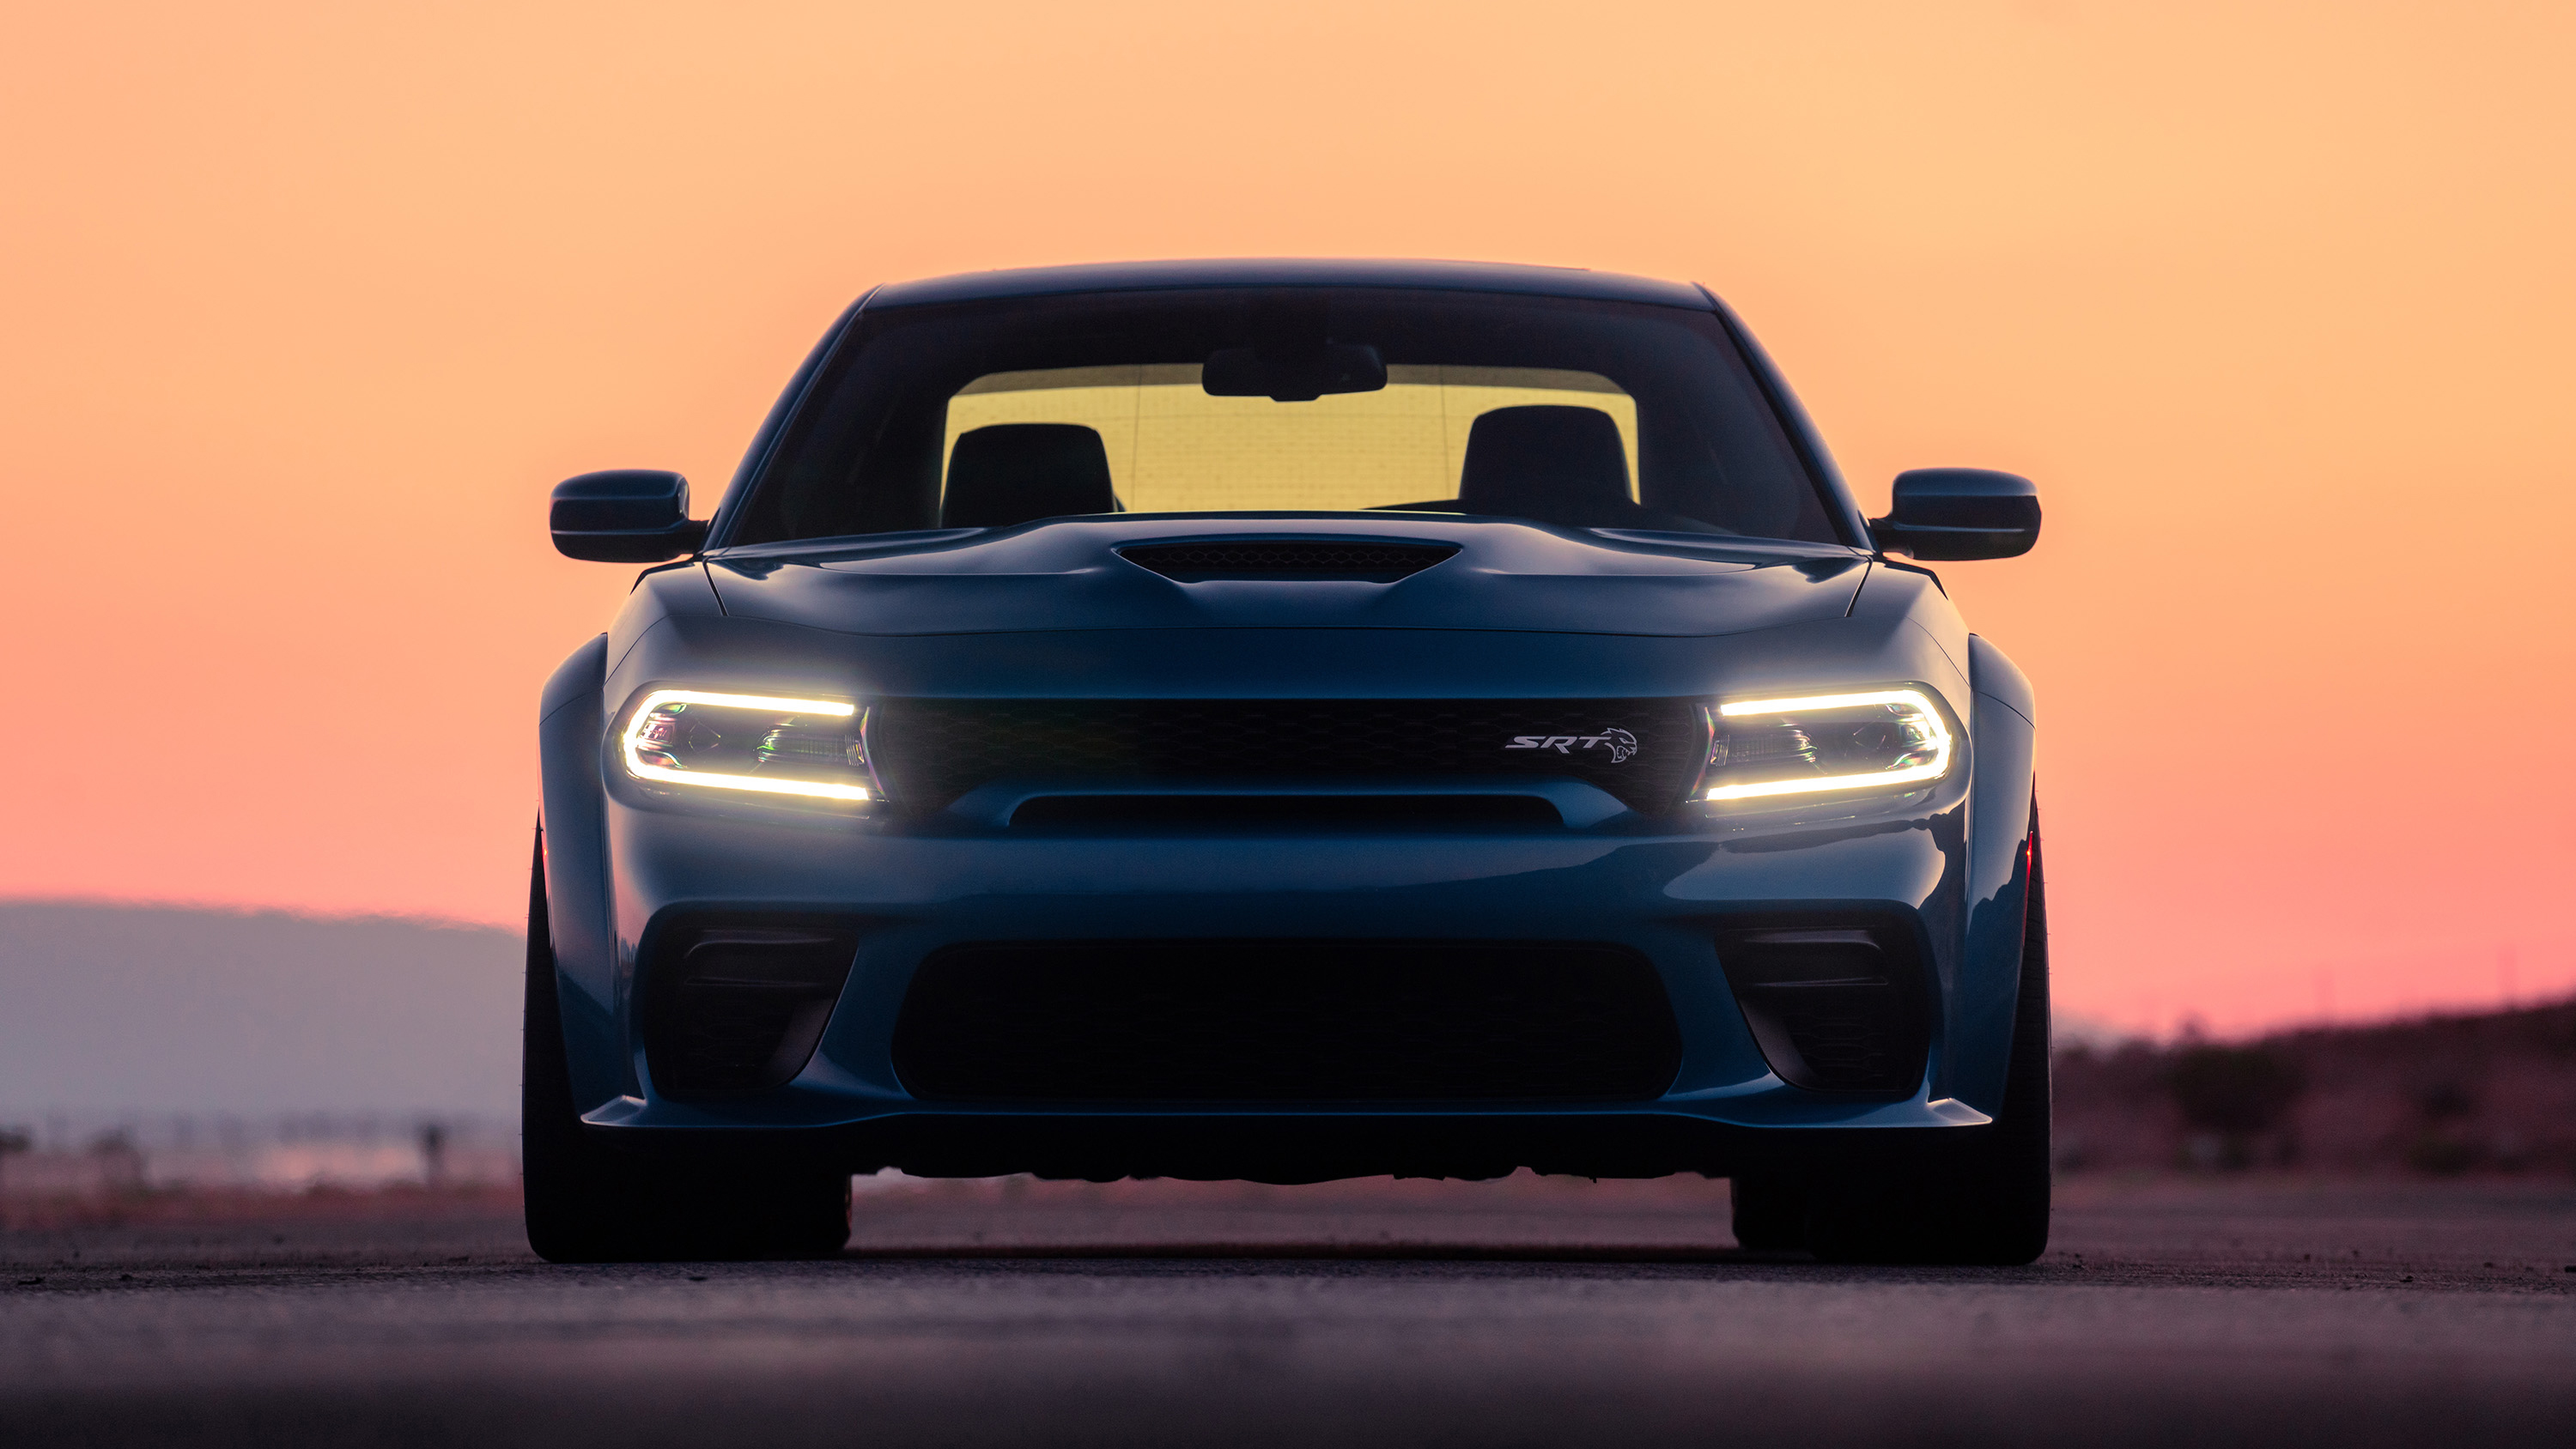 2020 Dodge Charger Srt Hellcat Widebody 3 Wallpaper Hd Car Wallpapers Id 12845